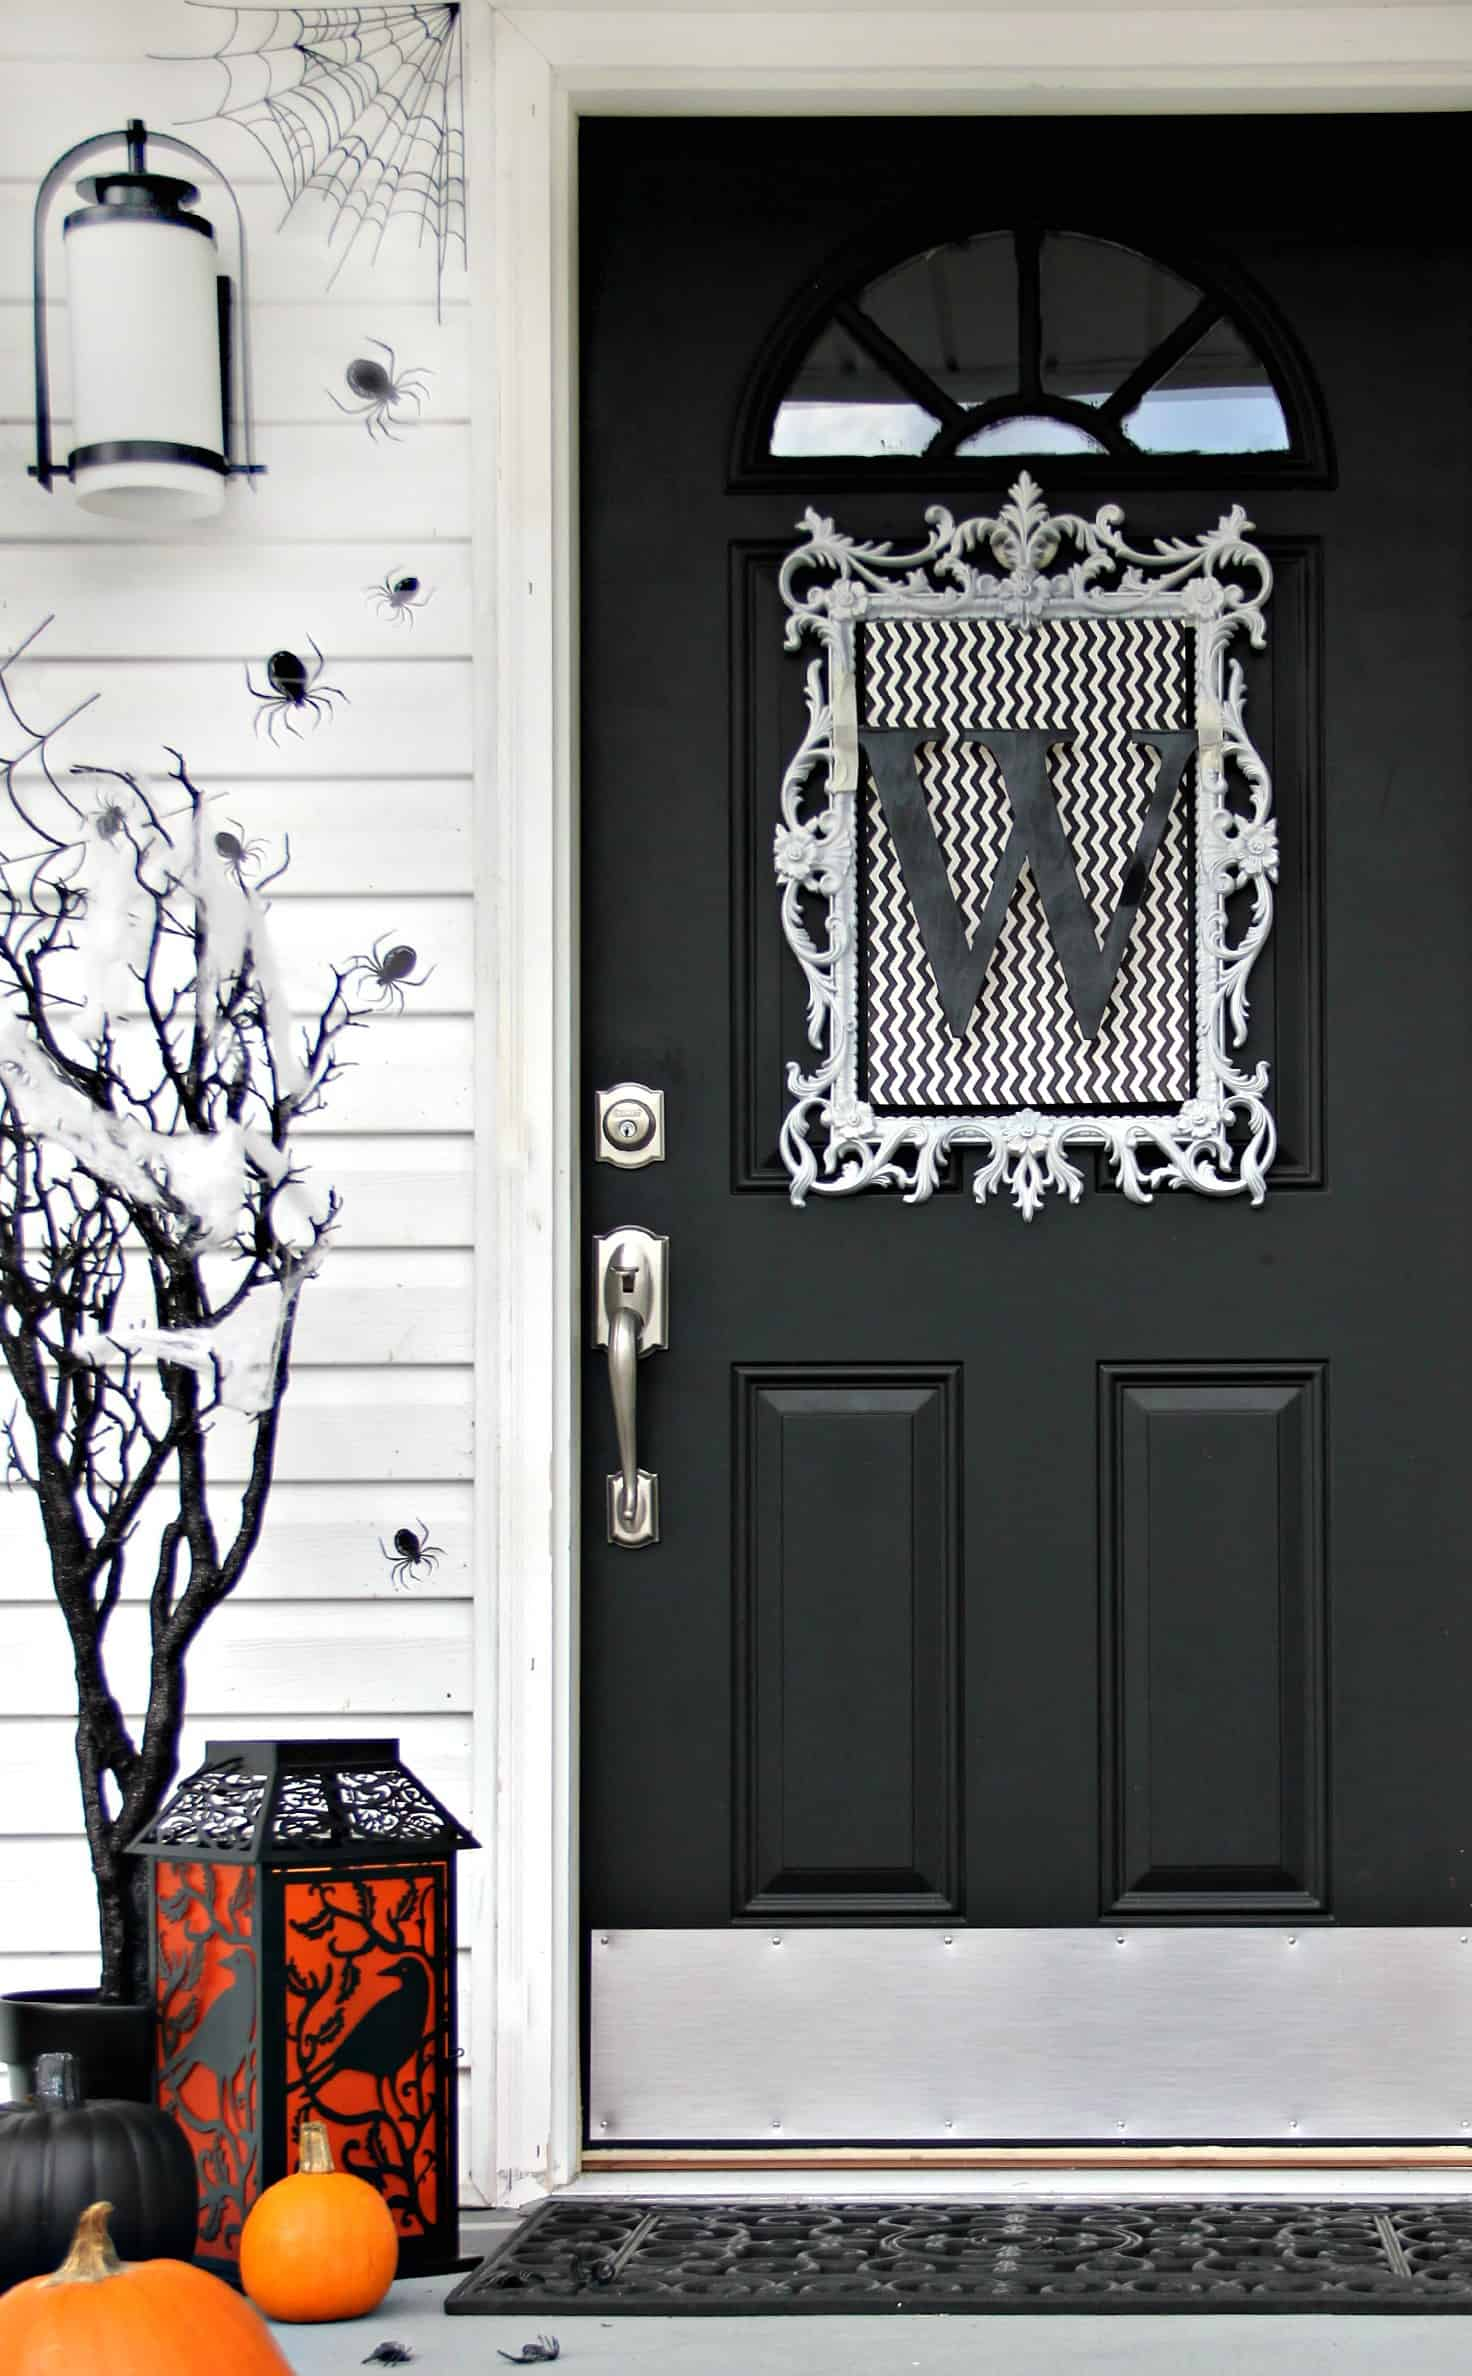 Decorative Ideas For Living Room Small: Four Ideas For Inexpensive Halloween Door Decorations